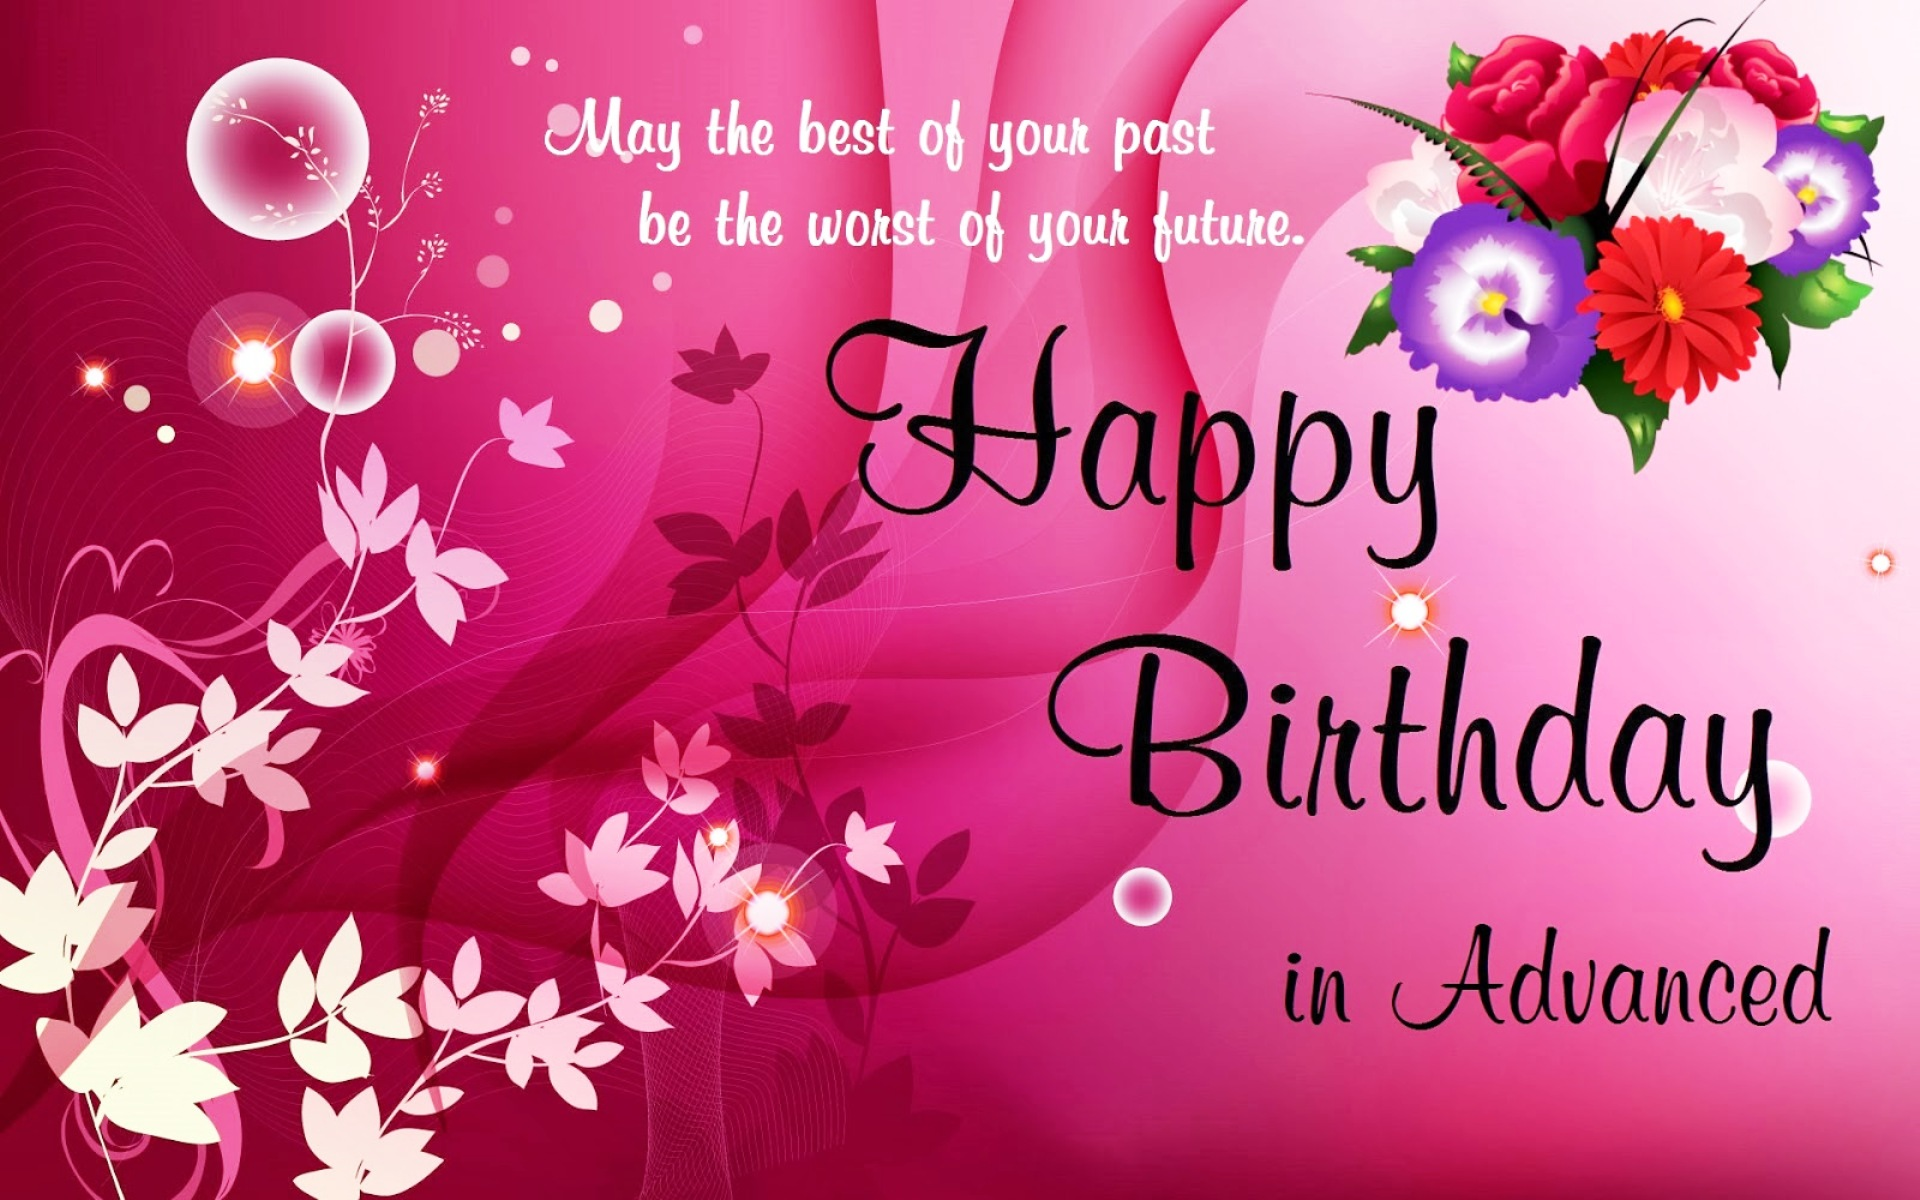 www happy birthday wallpaper free download ; Happy-Birthday-in-Advance-Wishes-Wallpapers